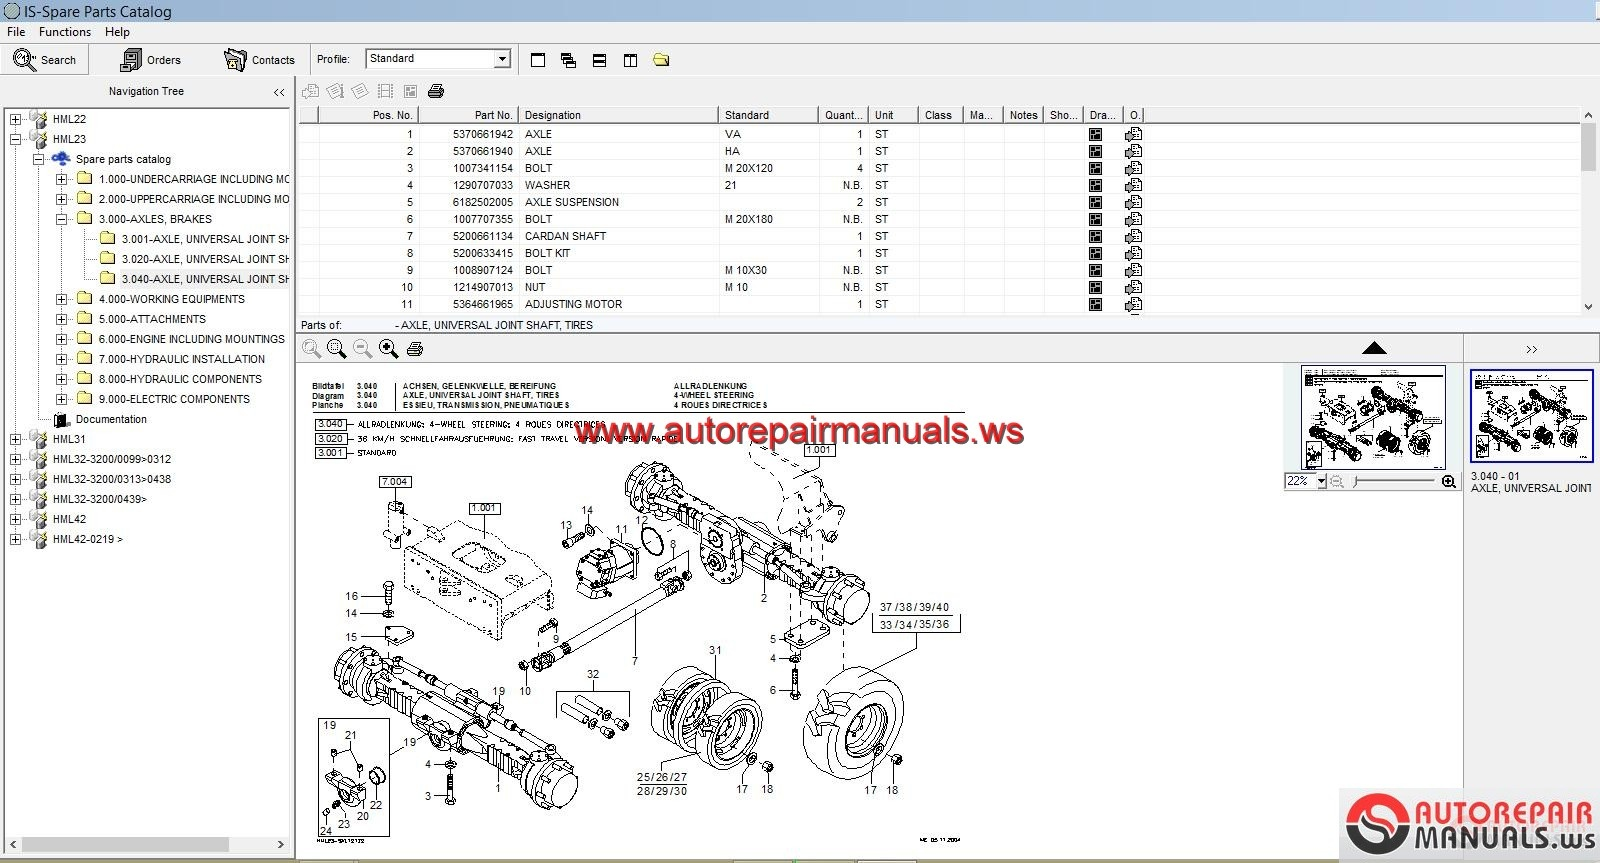 Schaeff_Terex_Parts_Catalogue4 moffett m5000 wiring diagram moffett wiring diagrams collection  at bayanpartner.co